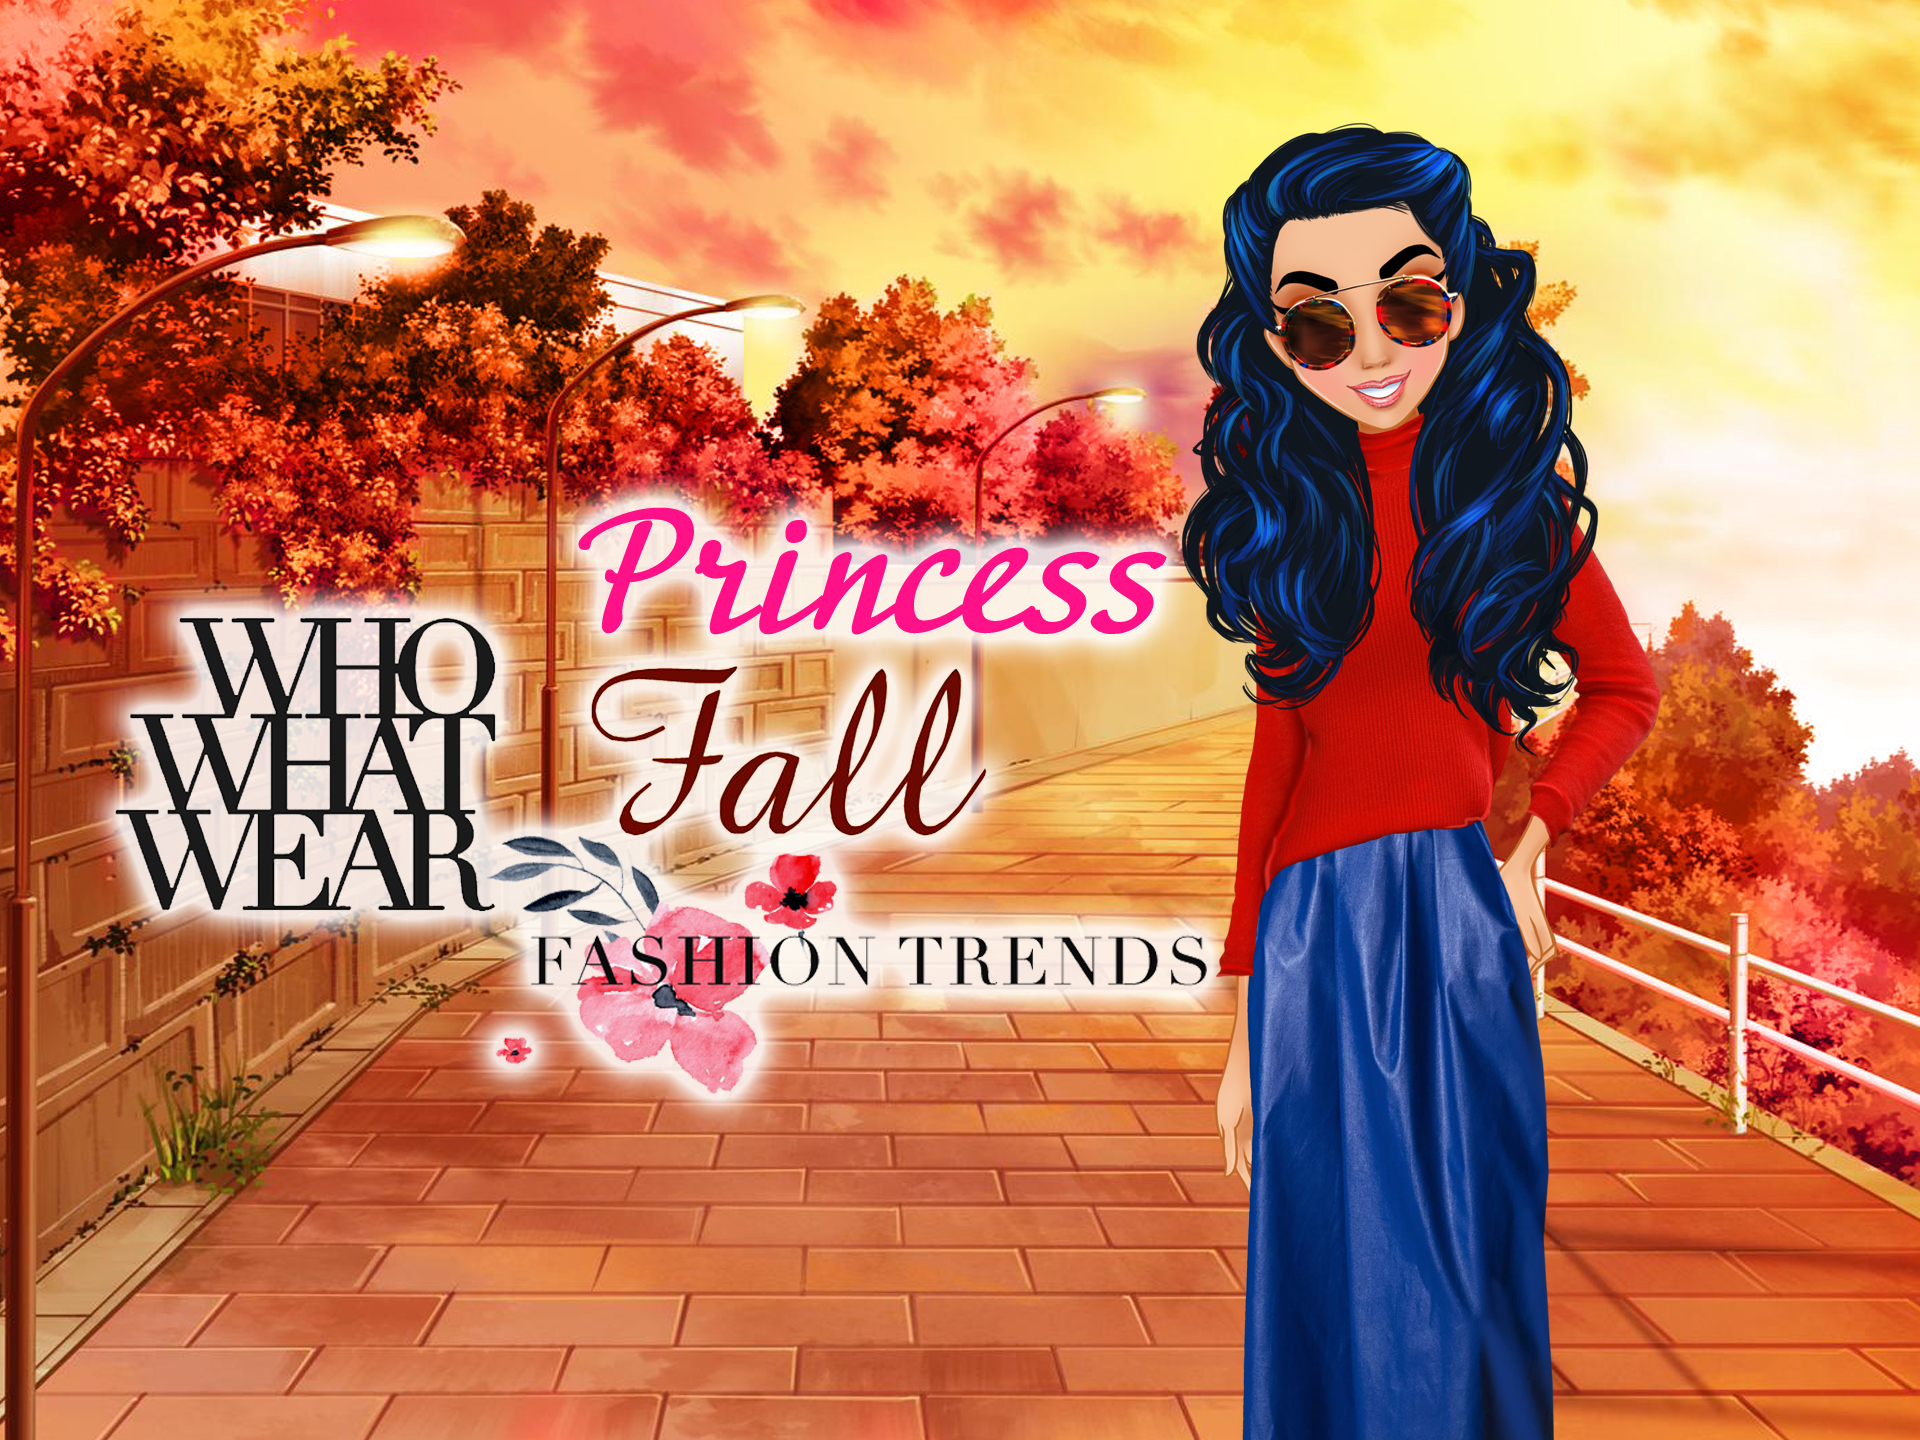 Who What Wear - Princess Fall Fashion Trends